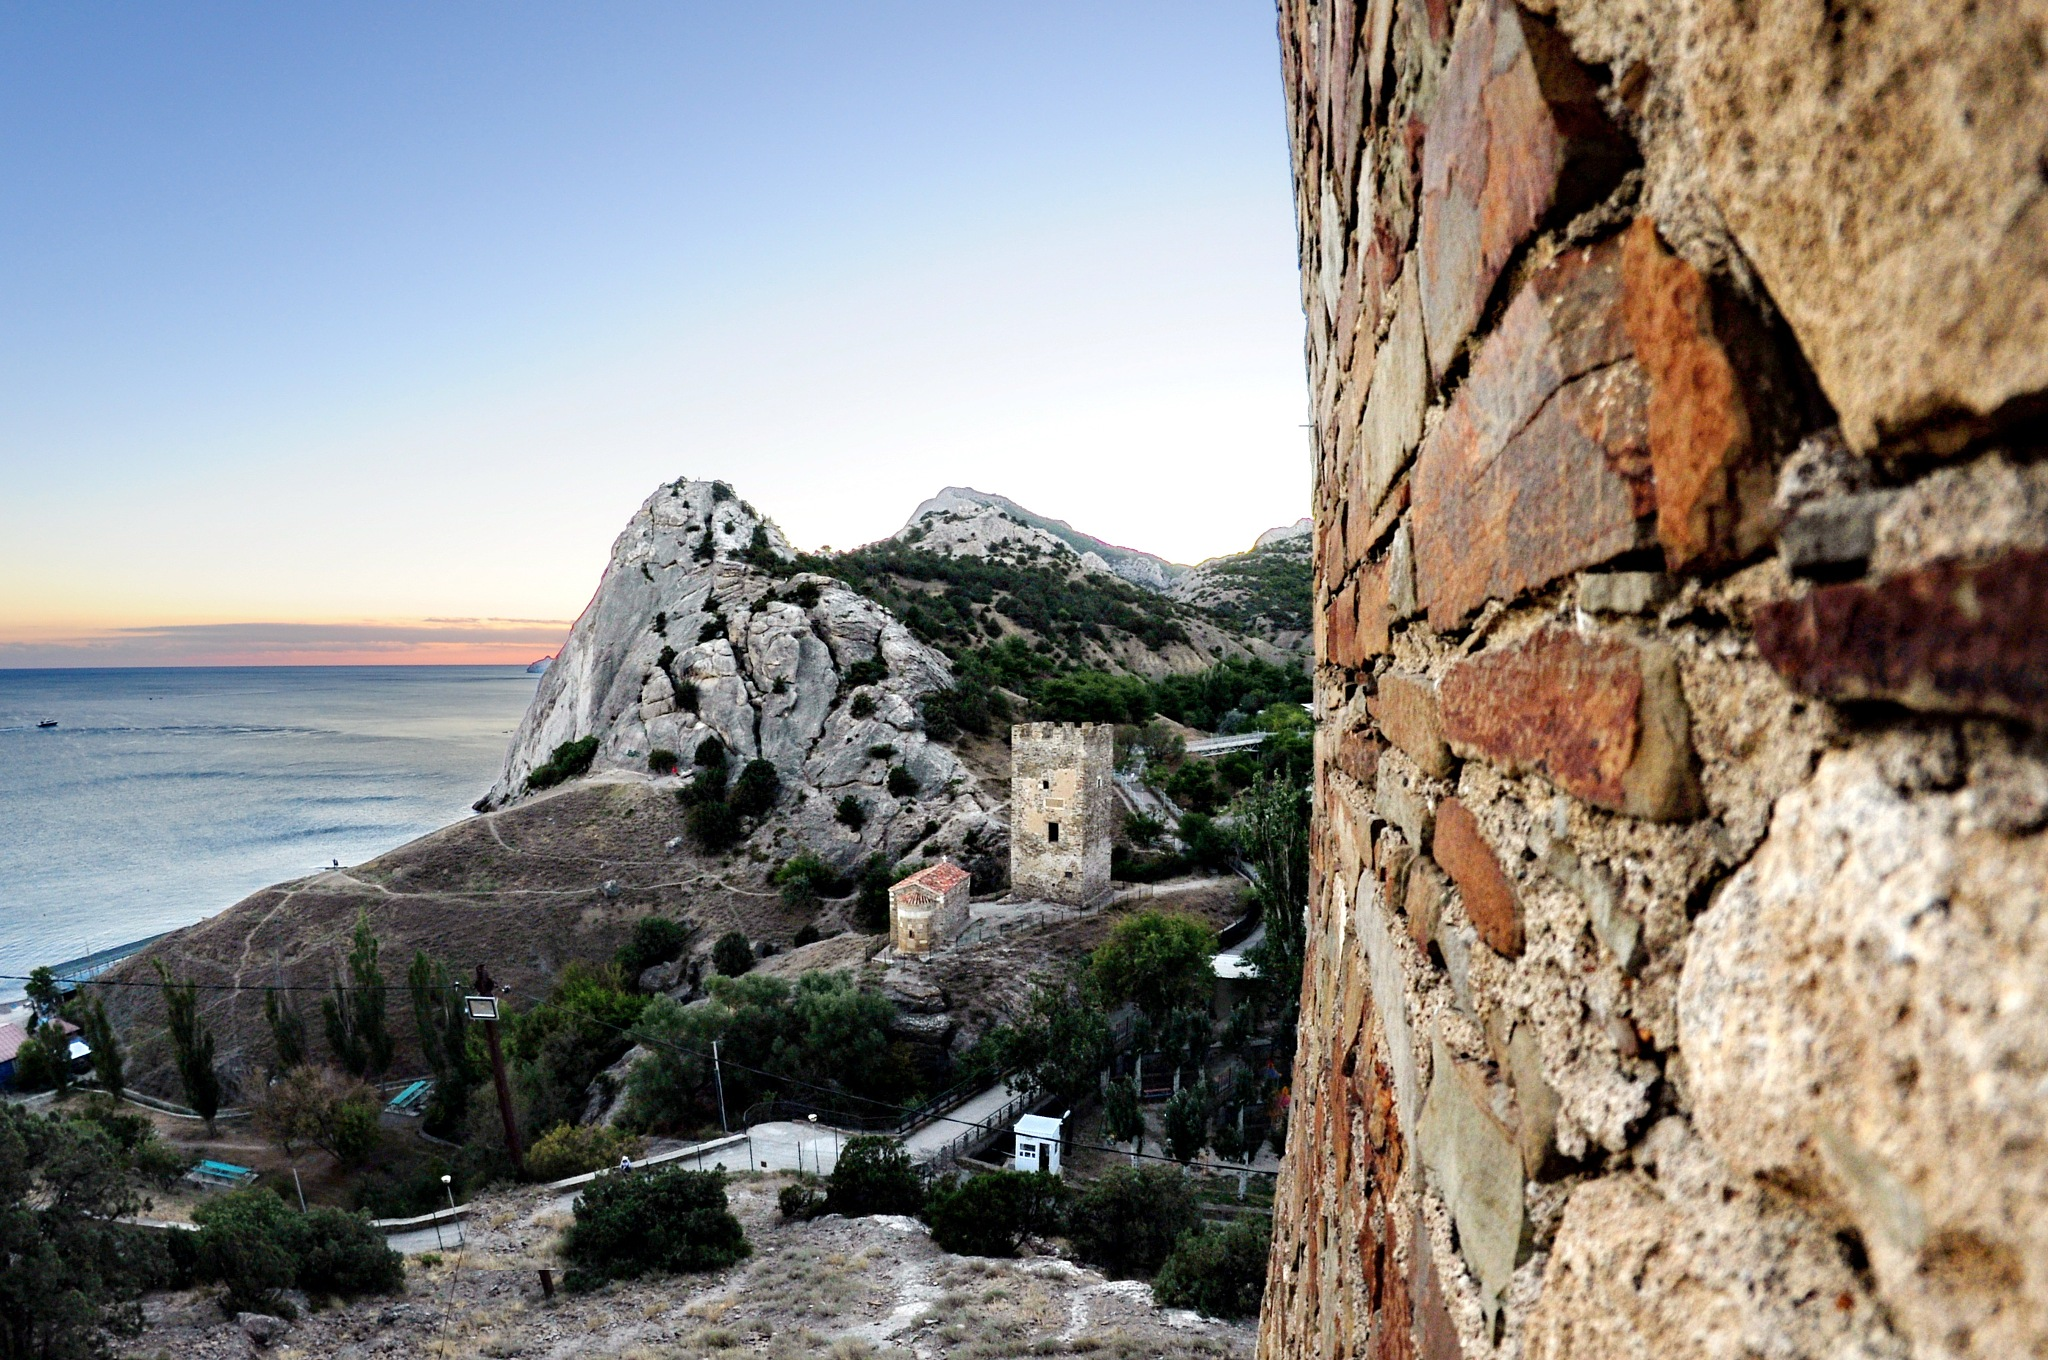 Sudak, Crimea, Genoese fortress by vadsever58